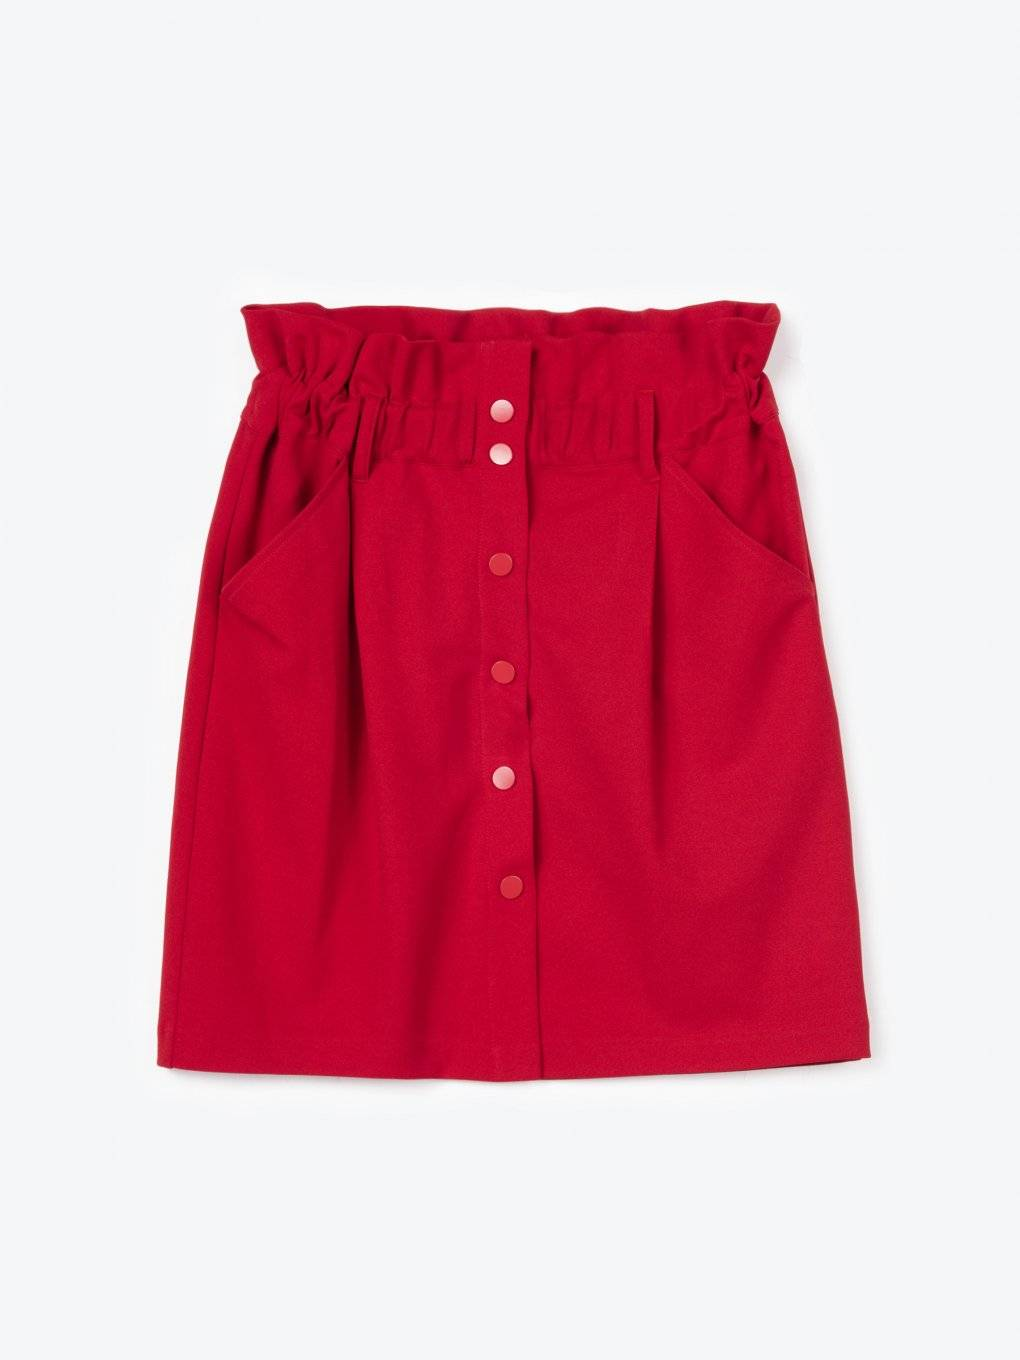 High-waisted button-down skirt